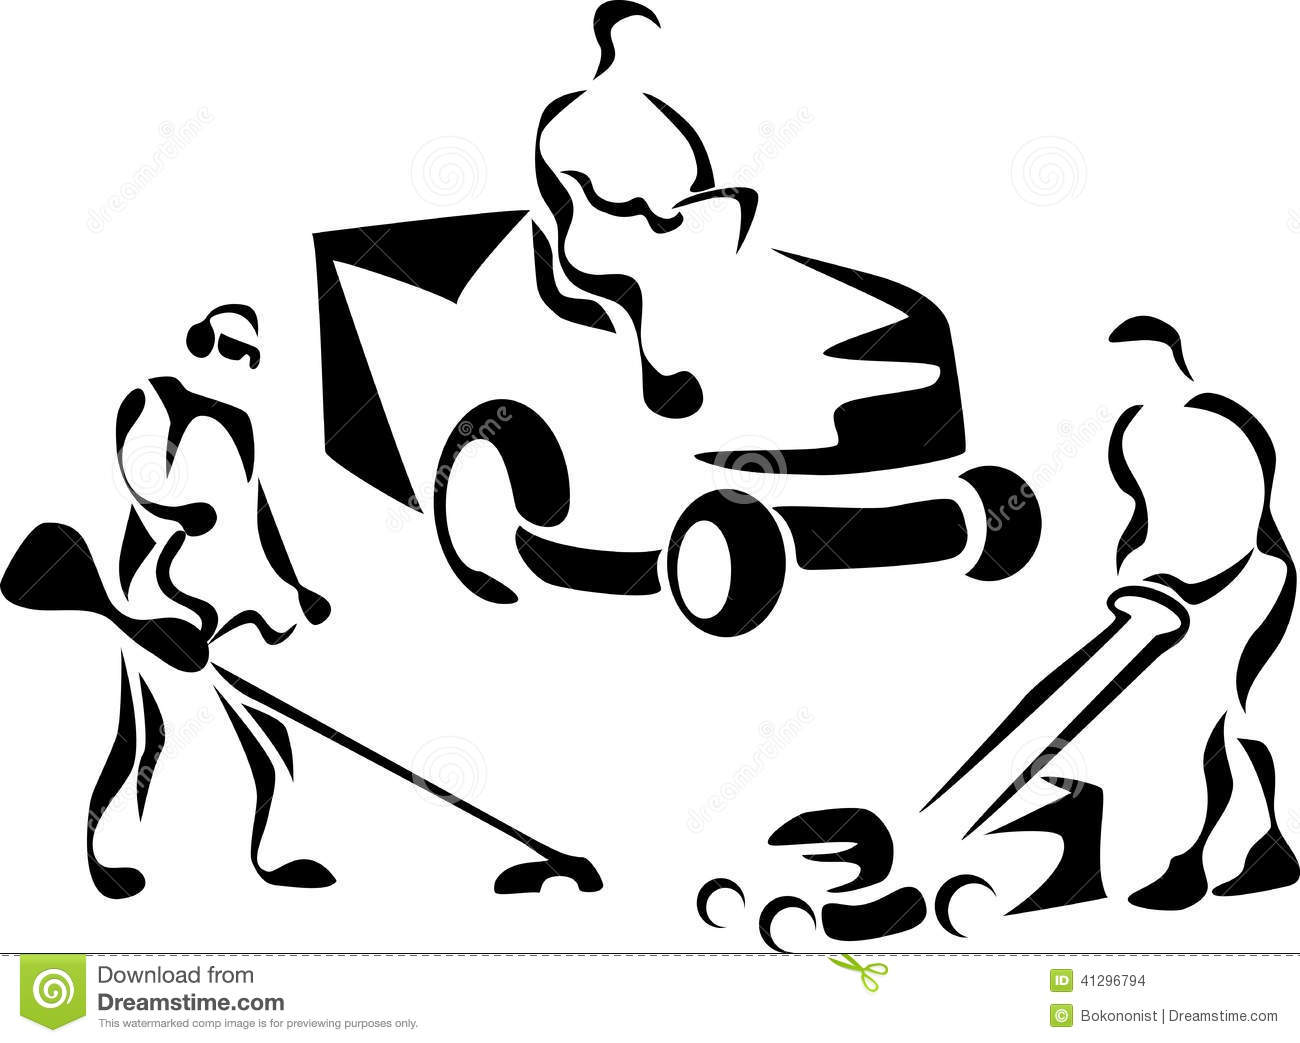 Lawnmower Cutting Grass Stylized Black White Illustration